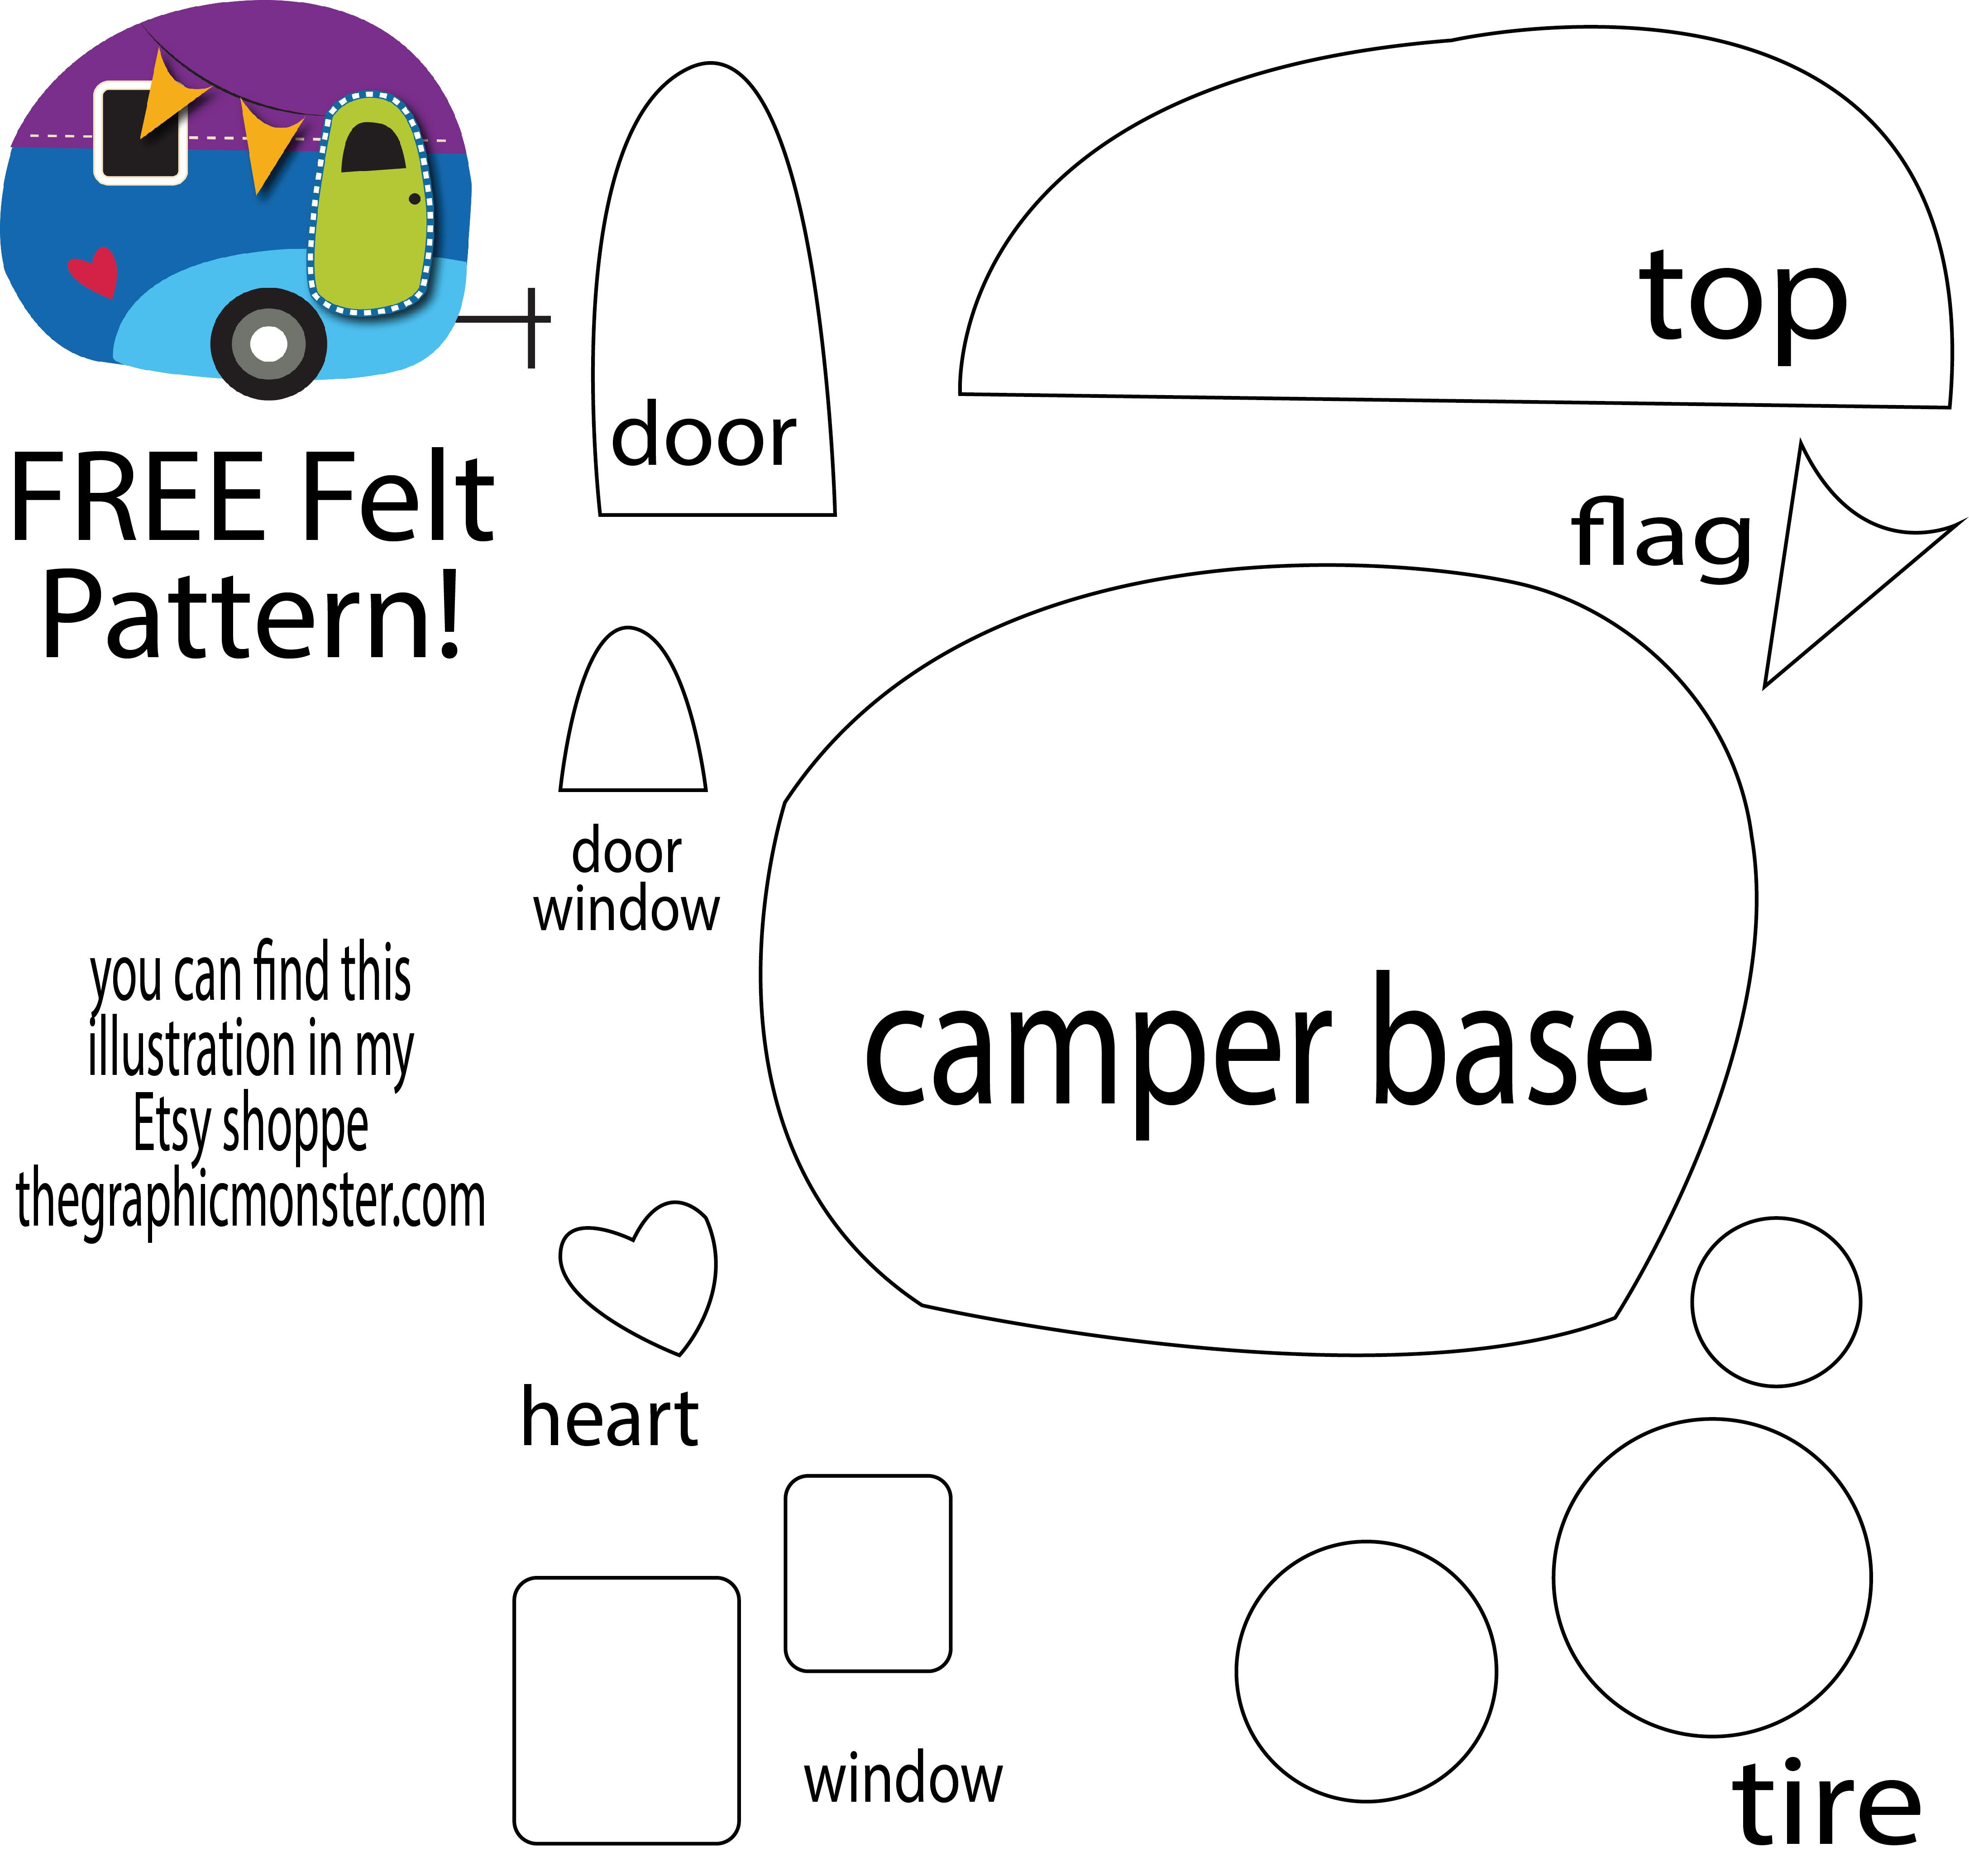 FREE Felt Pattern from my cute Camper illustration